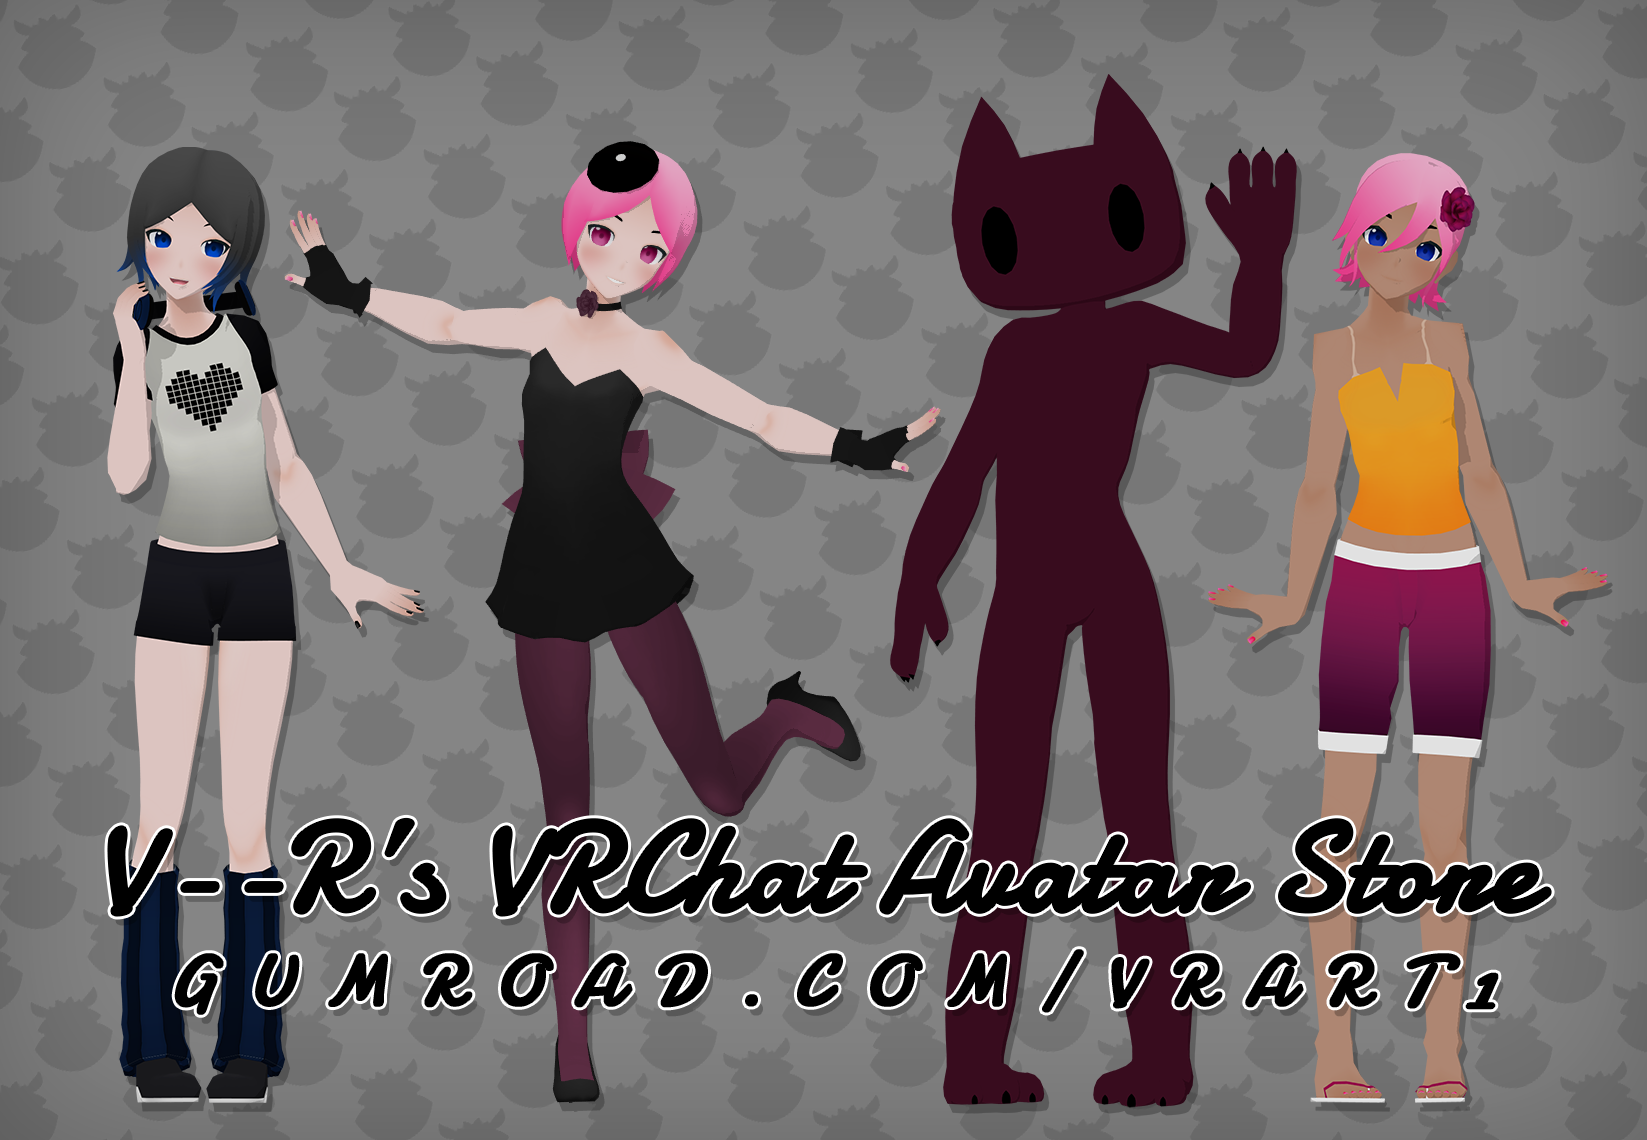 how to delete vrchat avatars